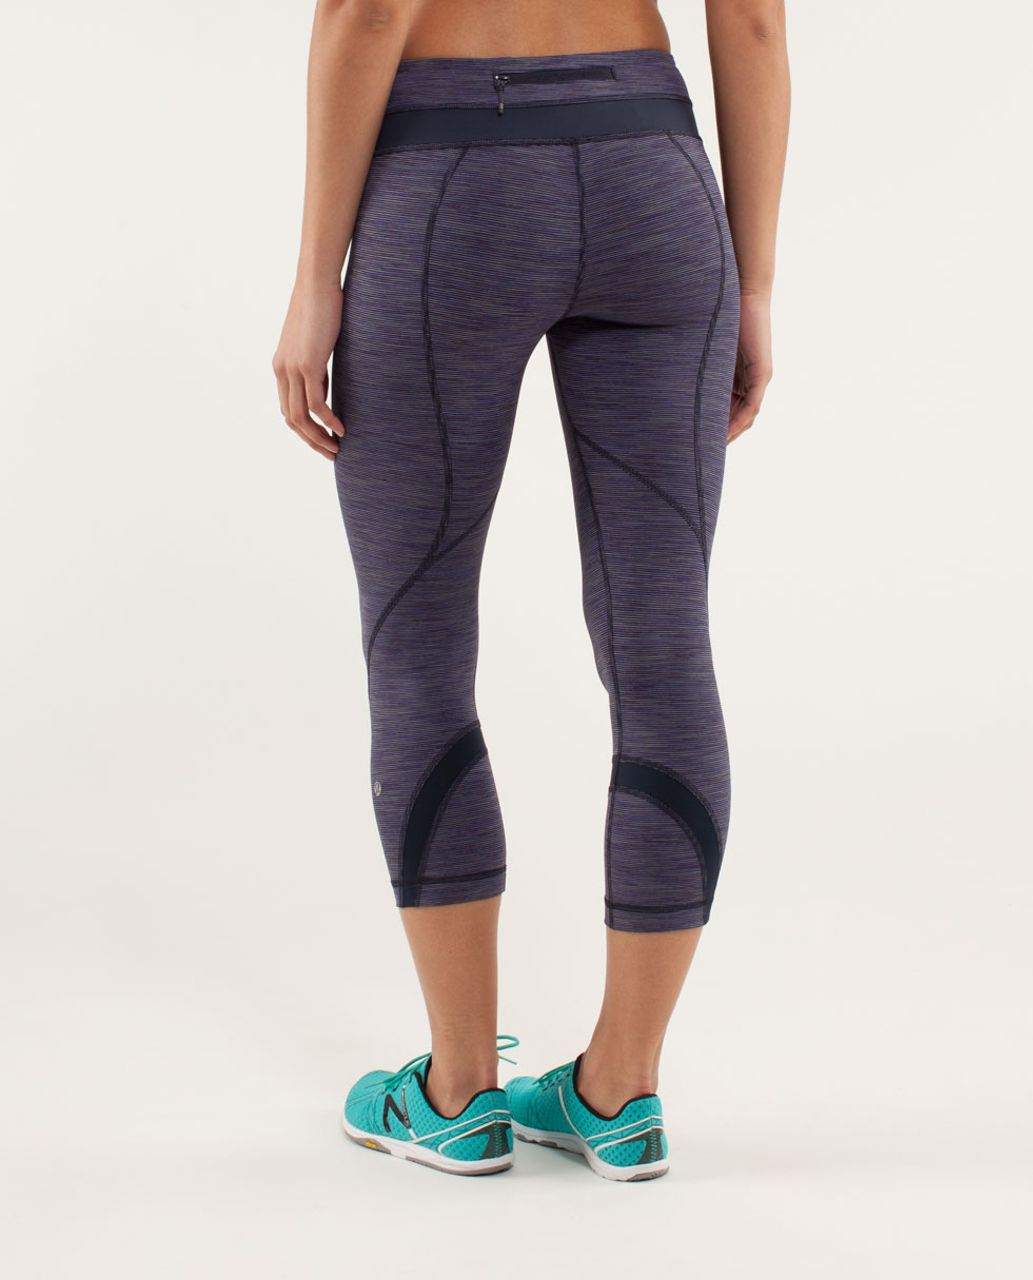 Lululemon Run:  Inspire Crop II - Wee Are From Space Deep Indigo Multi / Inkwell